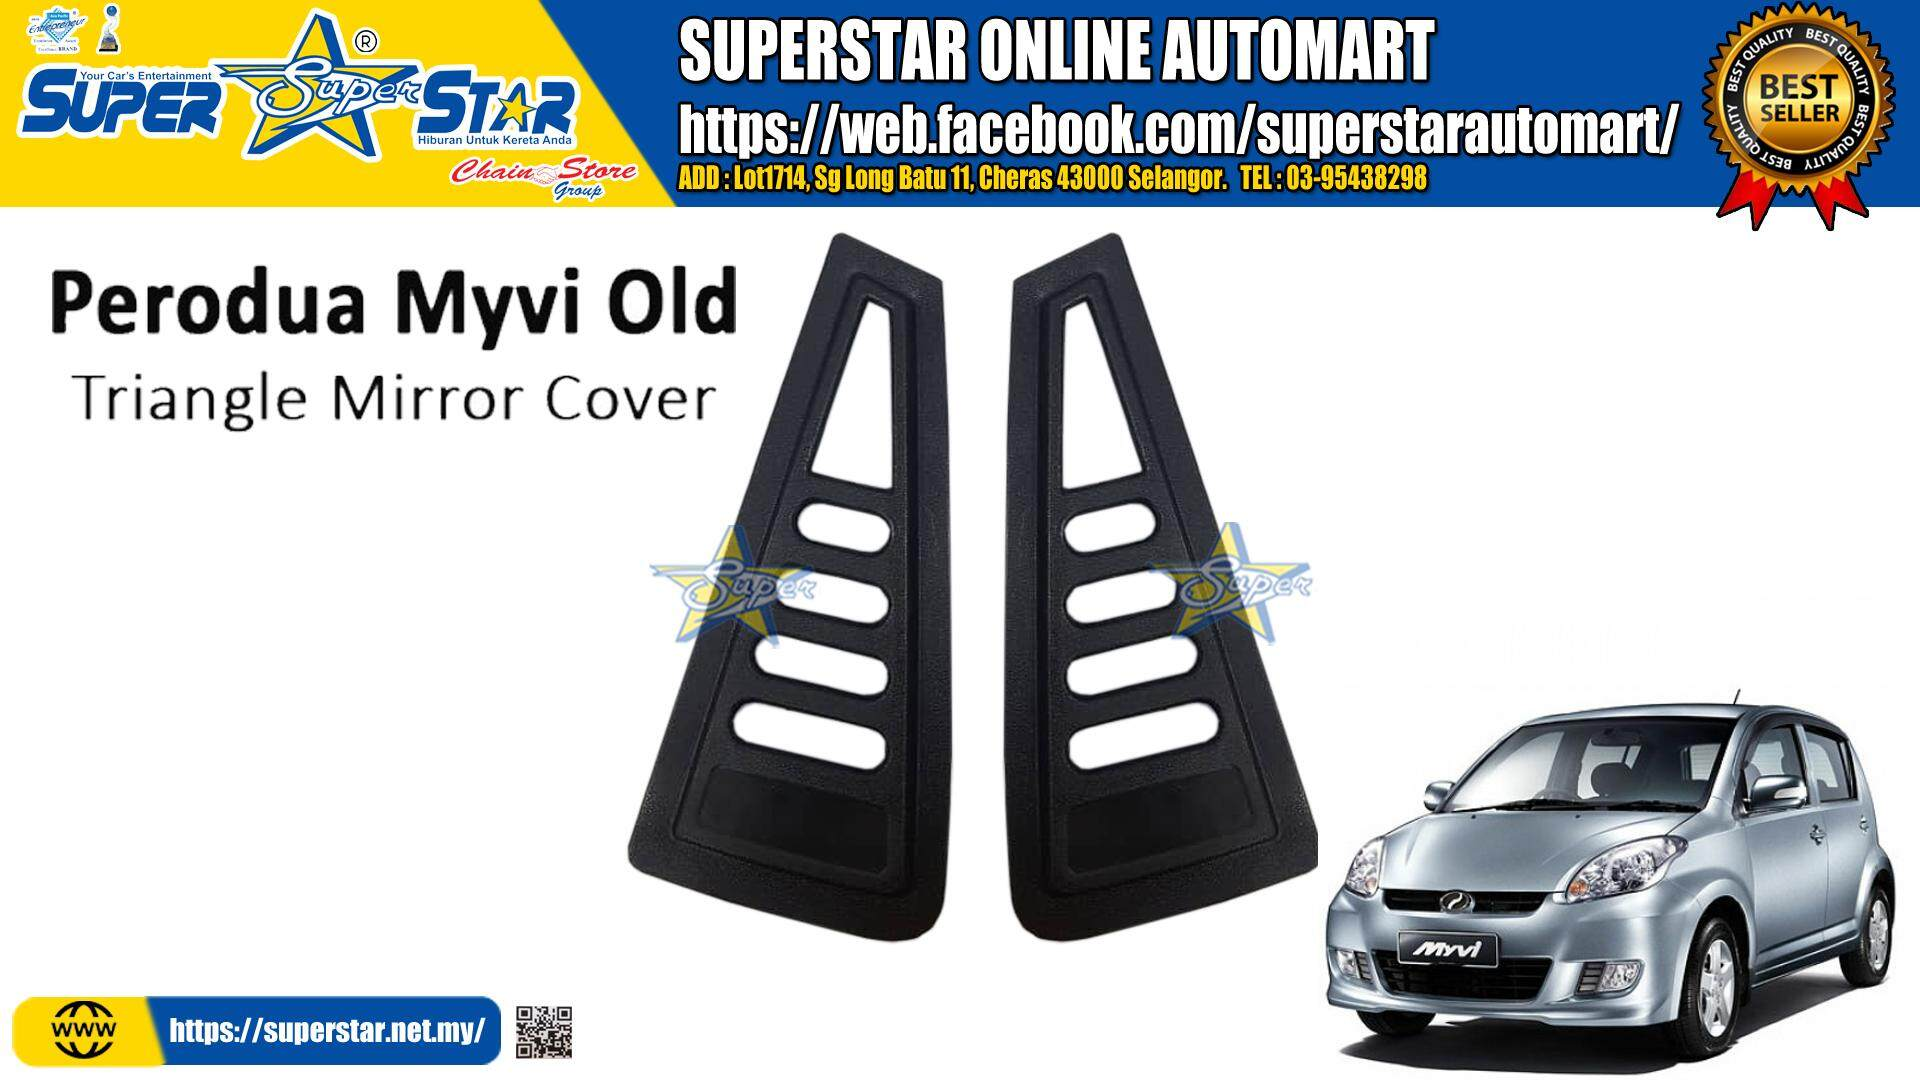 myvi old rear side triangle window cover